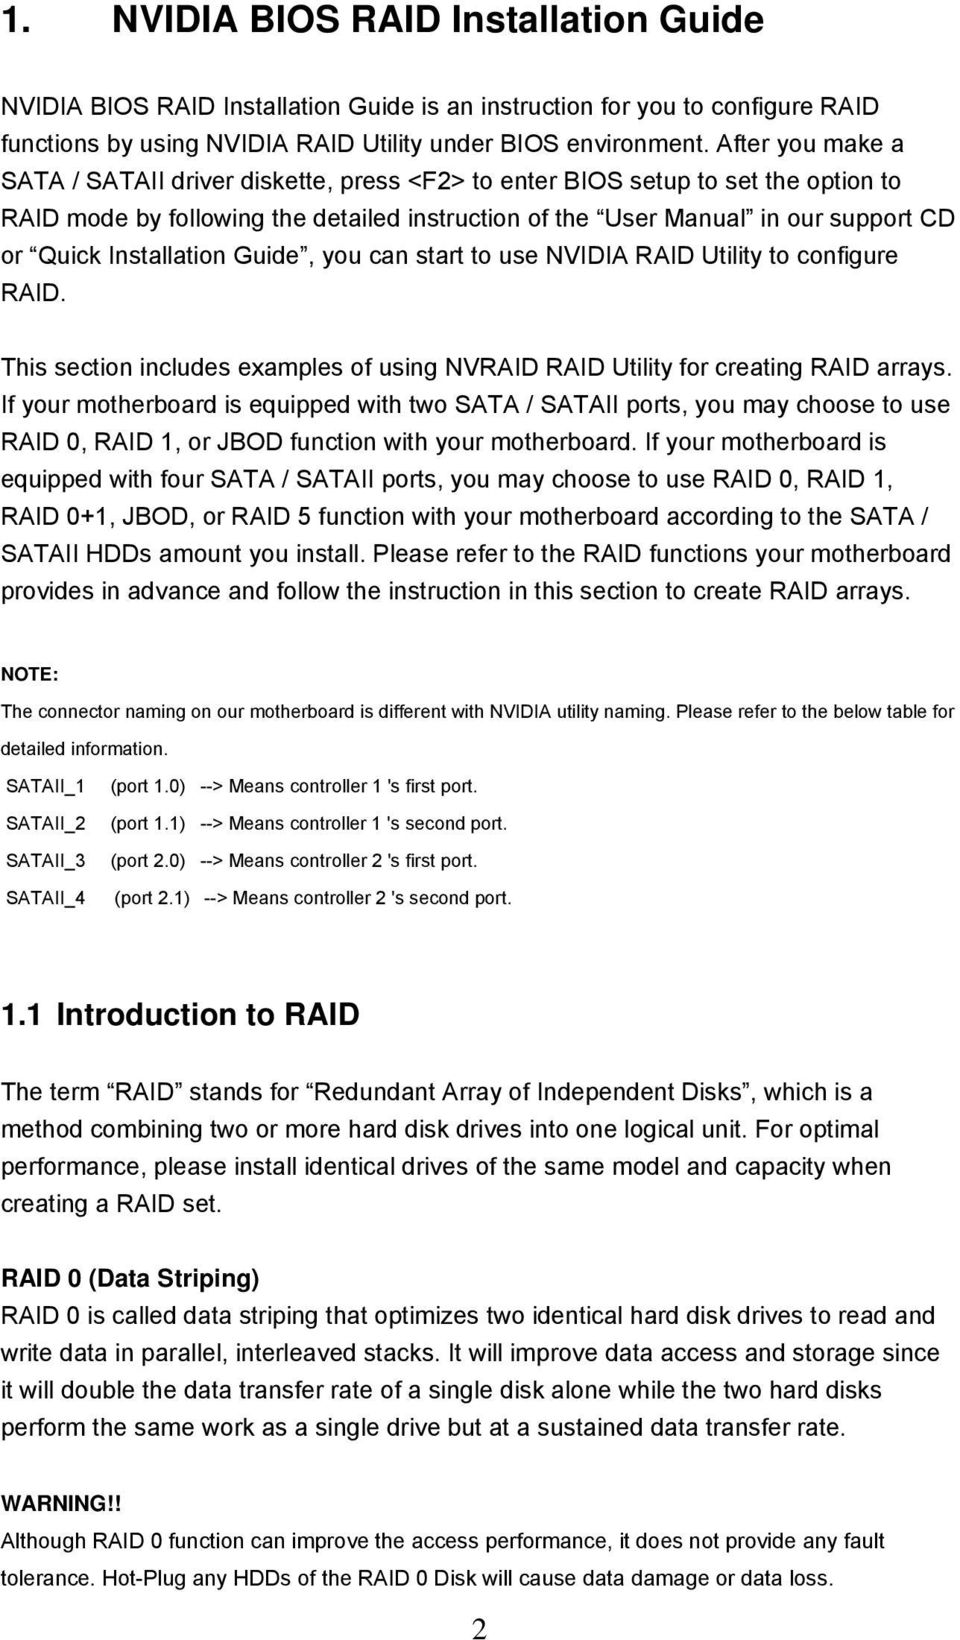 Installation Guide, you can start to use NVIDIA RAID Utility to configure RAID. This section includes examples of using NVRAID RAID Utility for creating RAID arrays.